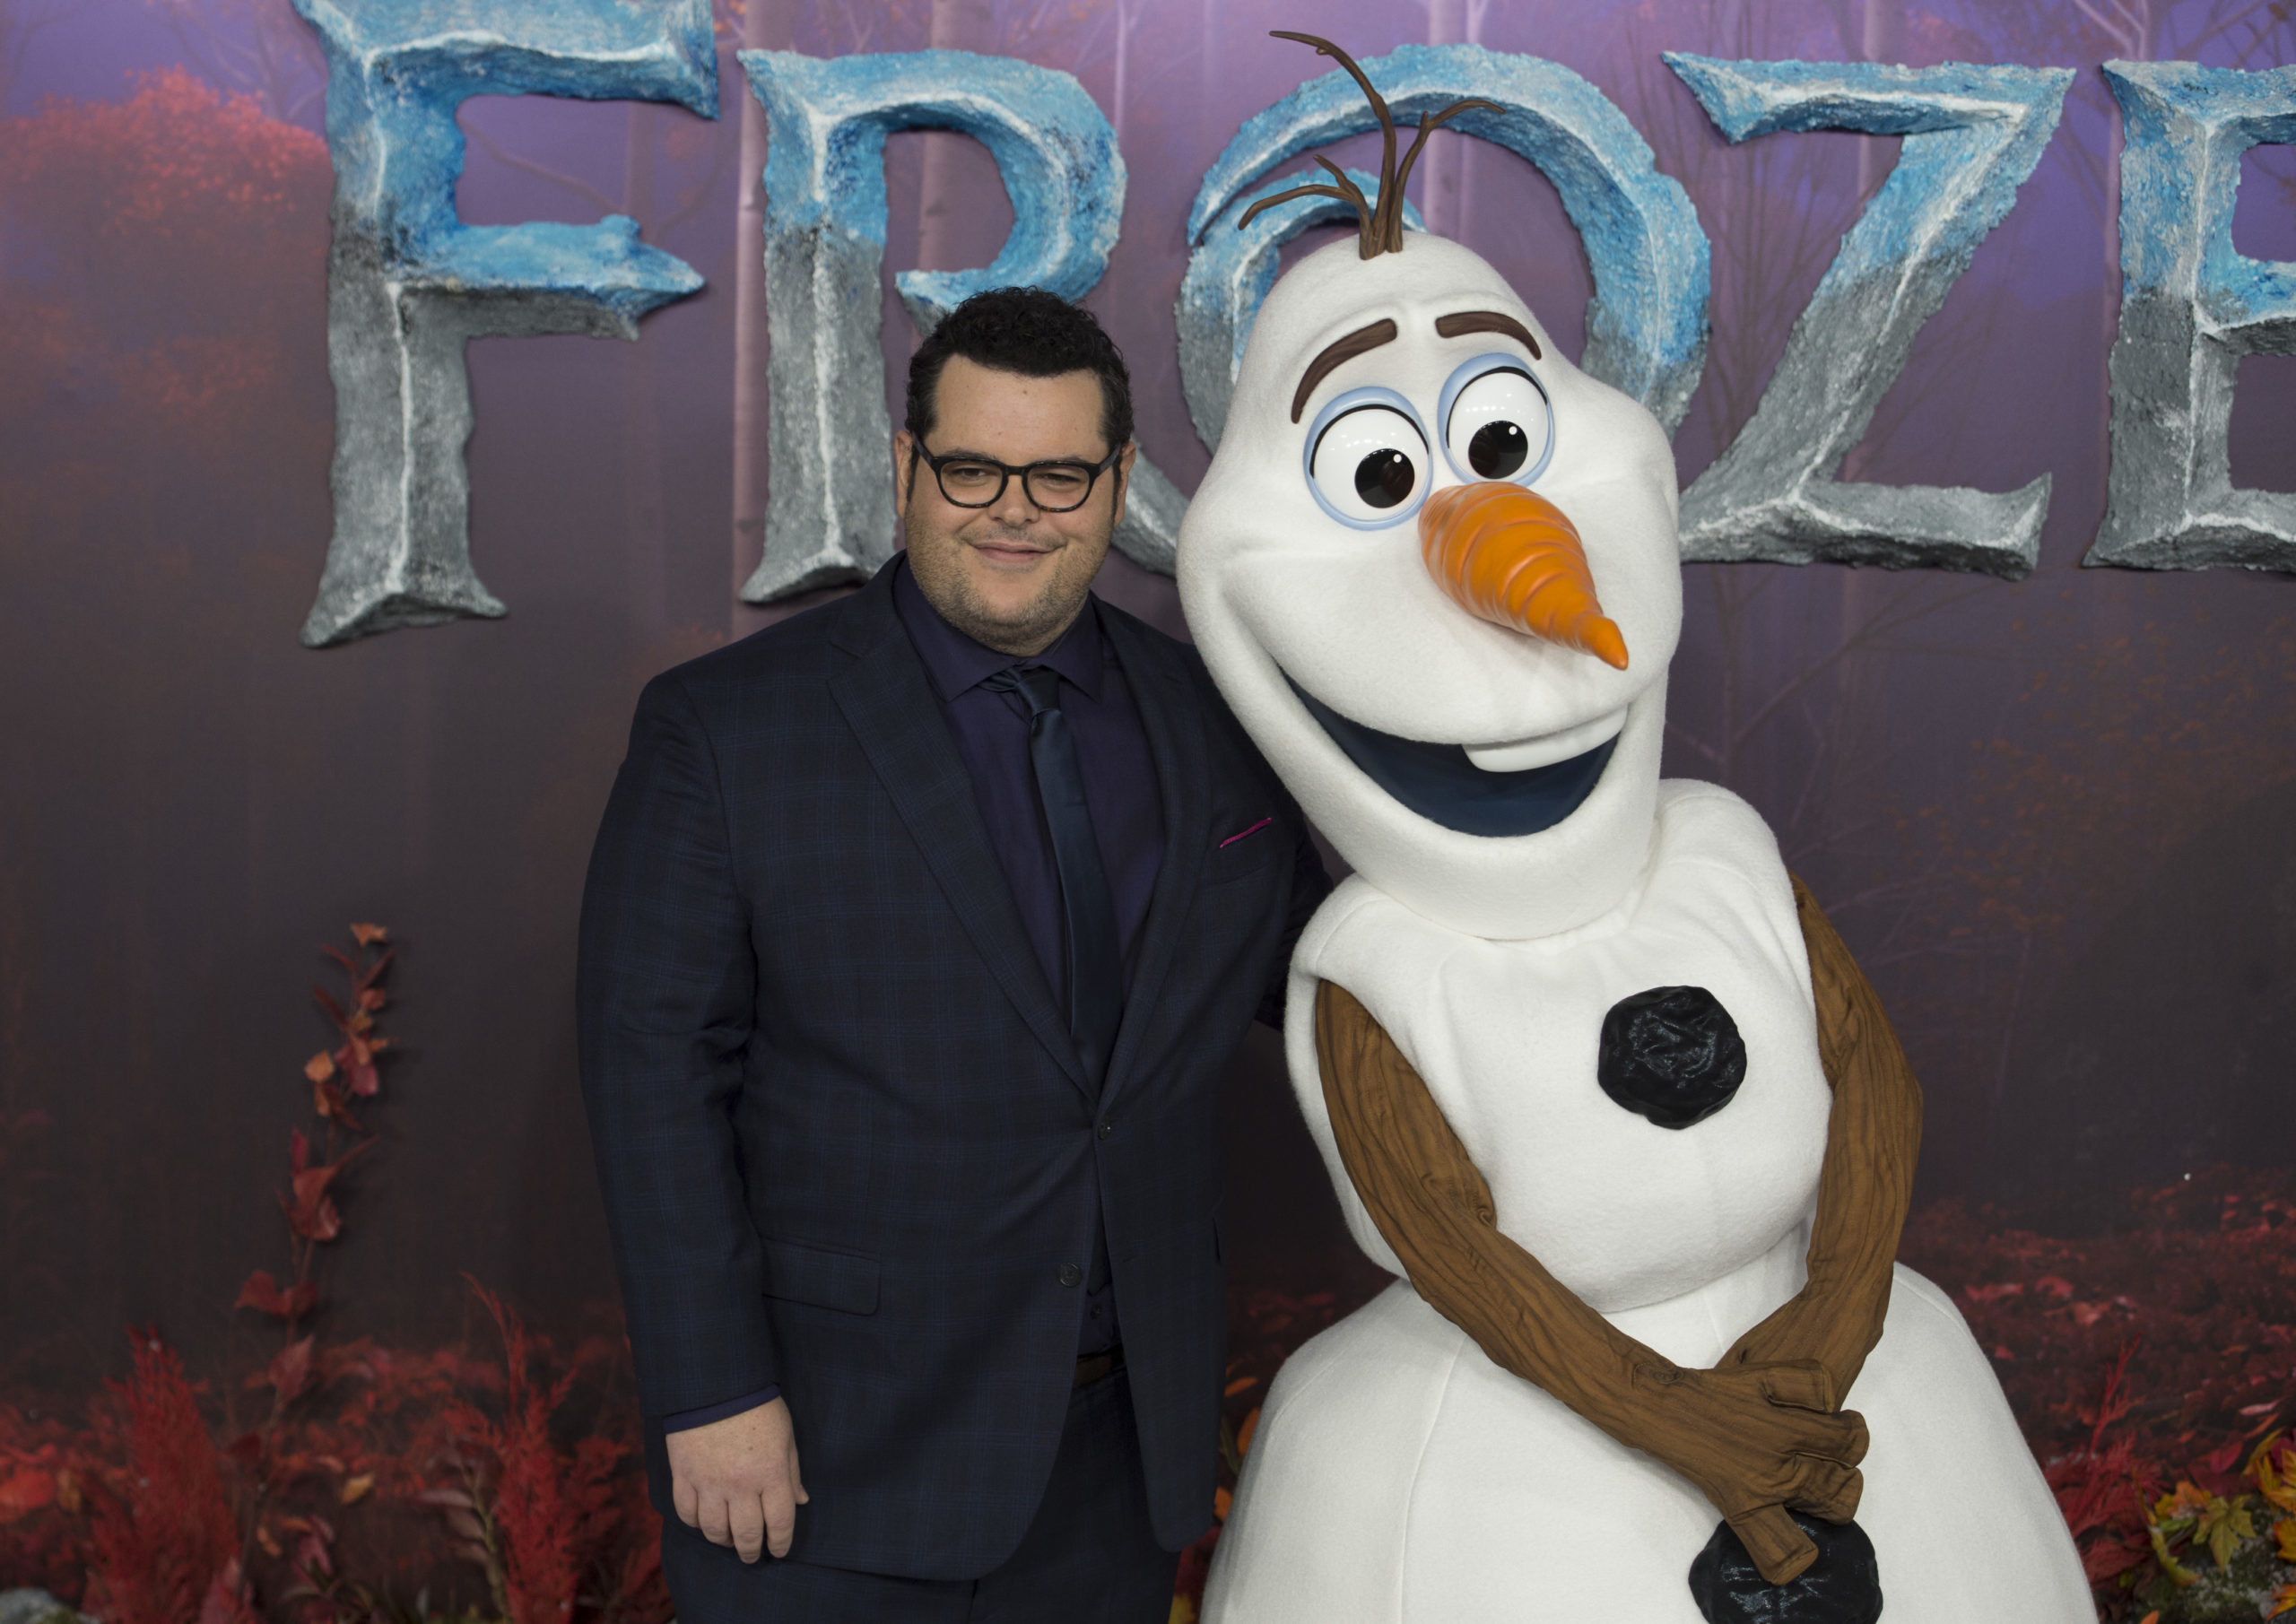 Frozen II facts